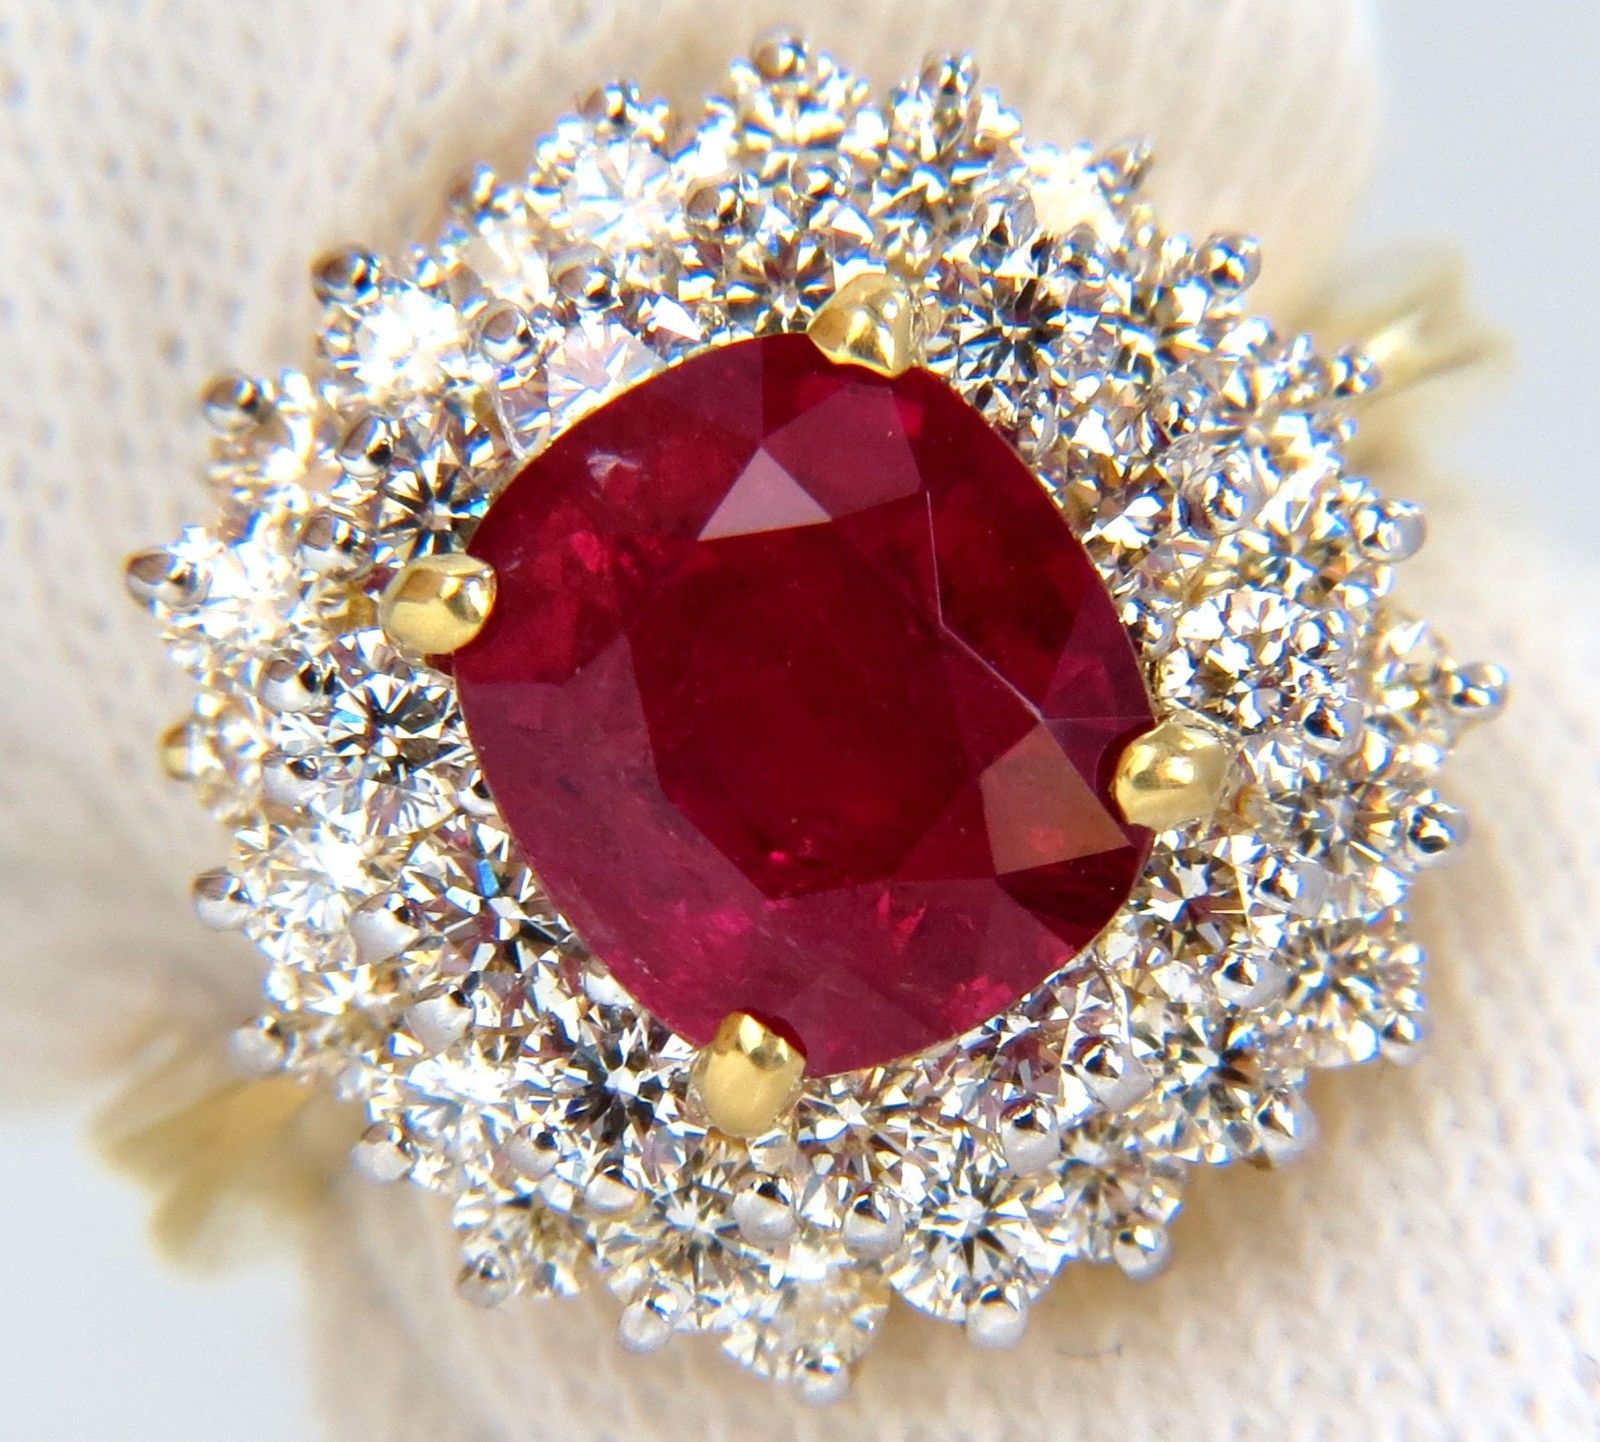 promised carat ring il diamond for engagement gold fullxfull rings natural listing shaped ruby red pear her rznu birthstone